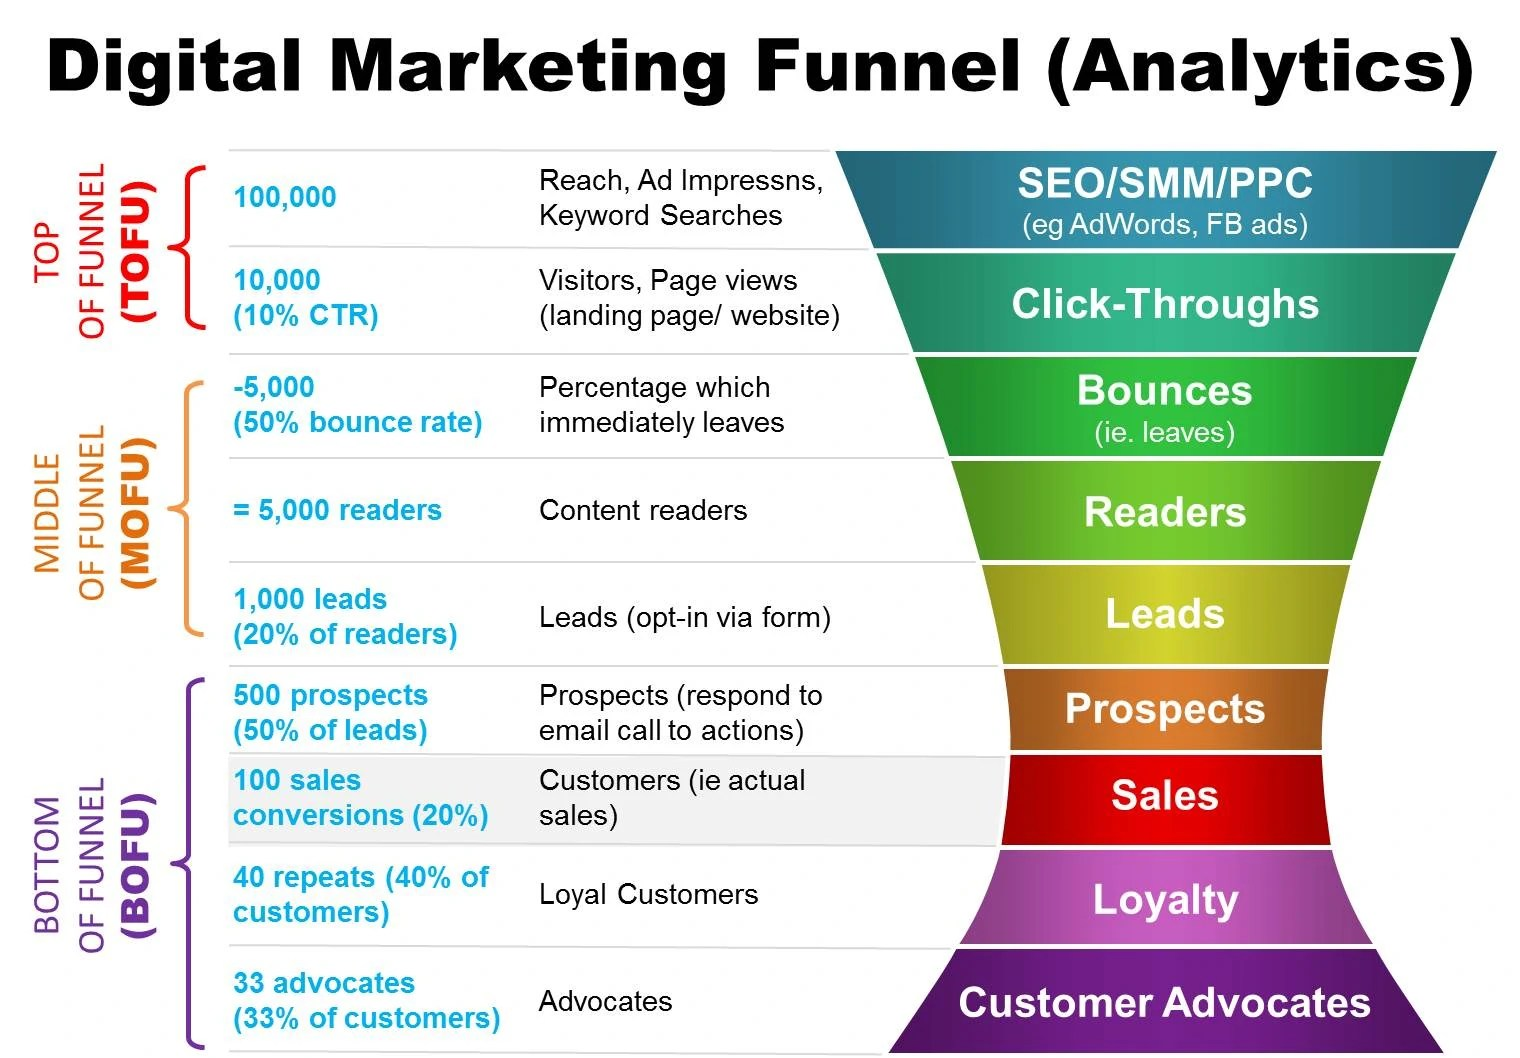 Digital Marketing Funnelytics